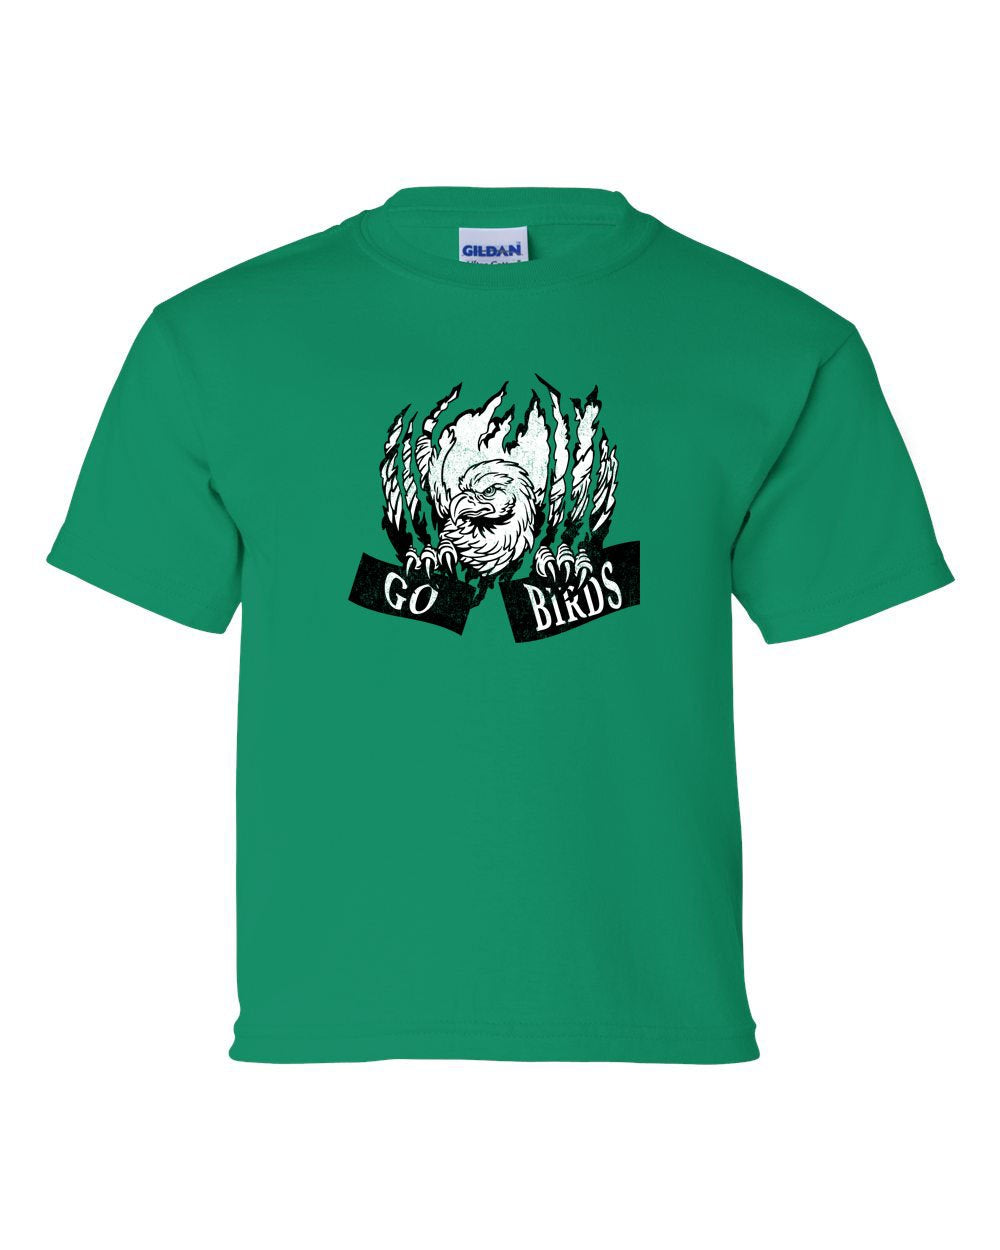 Go Birds Claw KIDS T-Shirt